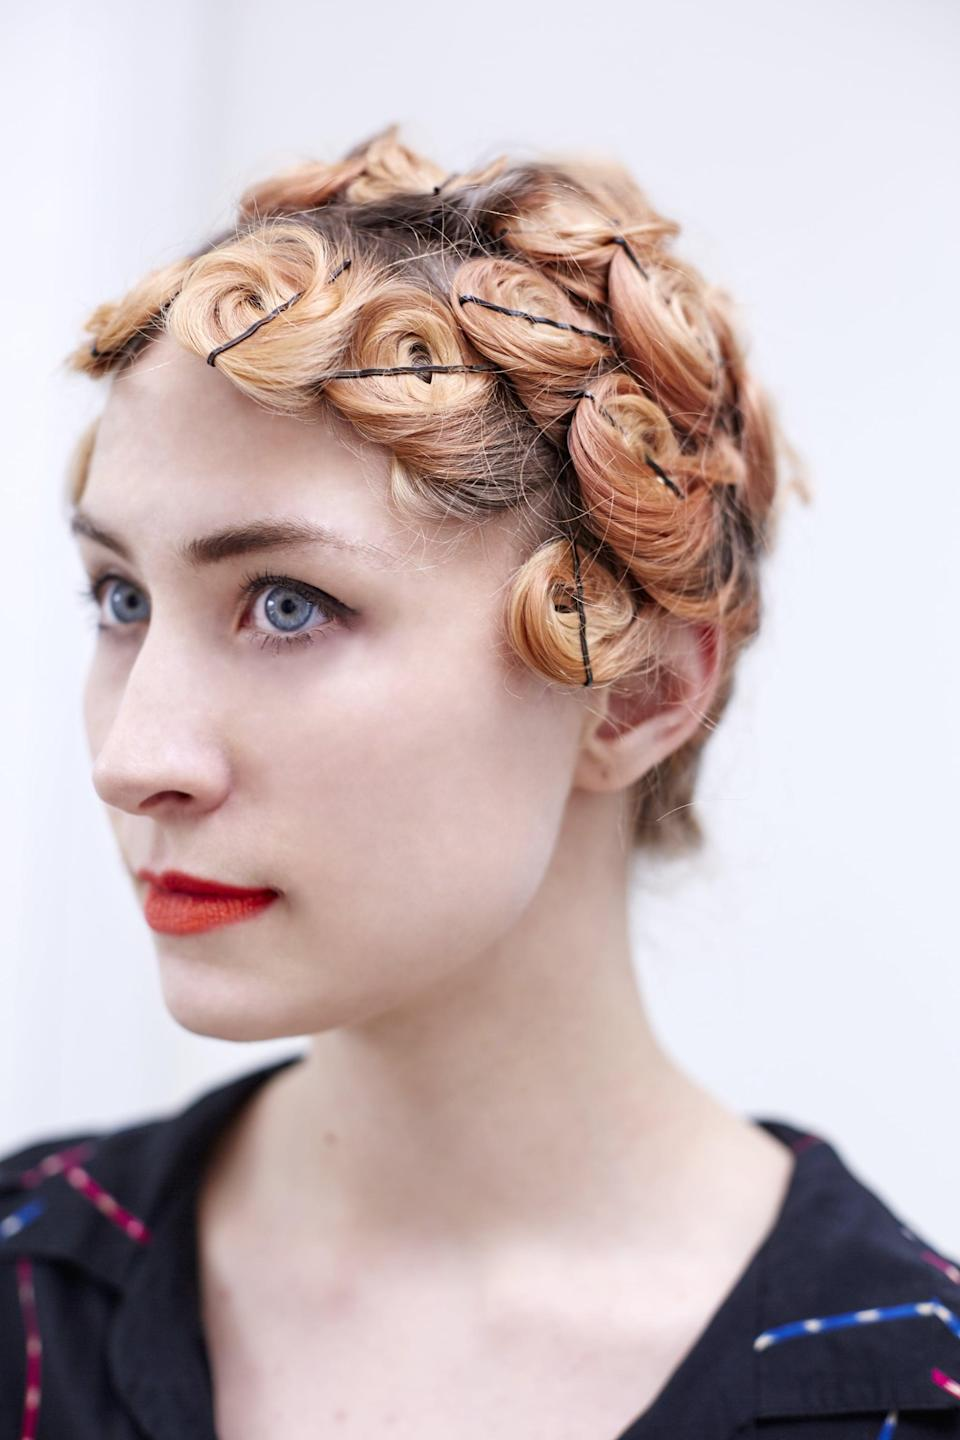 <p>Continue this process until all of your hair is pinned up. Once you're finished, air-dry or diffuse your hair with a blowdryer until it feels done. If you'd like, you can wrap your hair in a silk scarf and sleep on it overnight to ensure that it's completely dry and the curls set.</p>